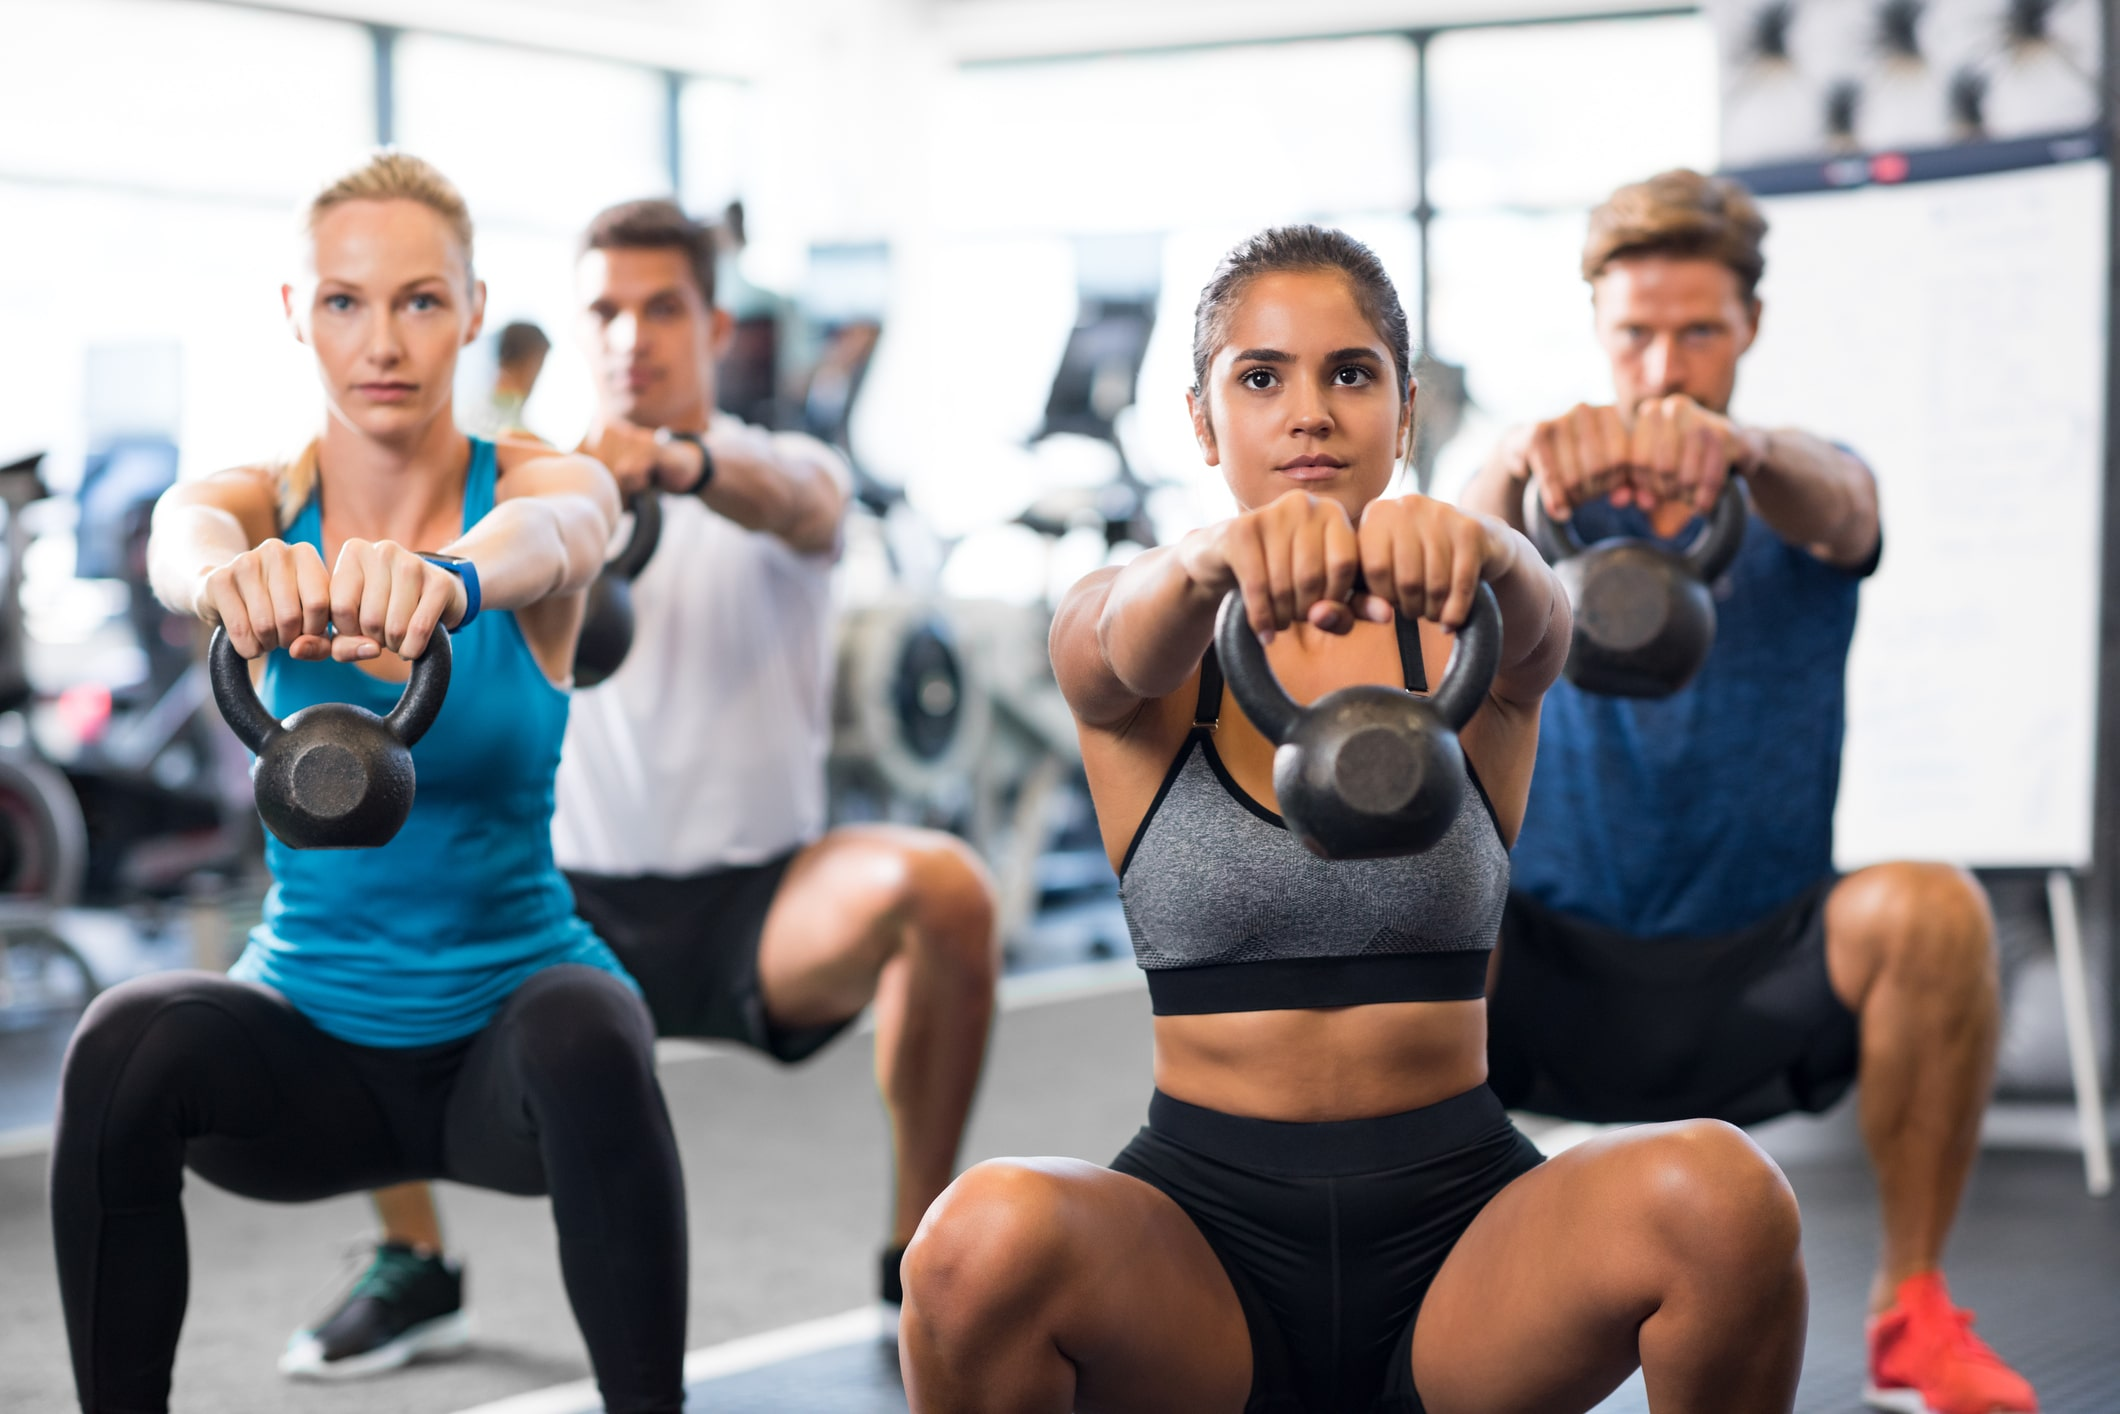 what should i expect from my First Boot Camp Fitness Class